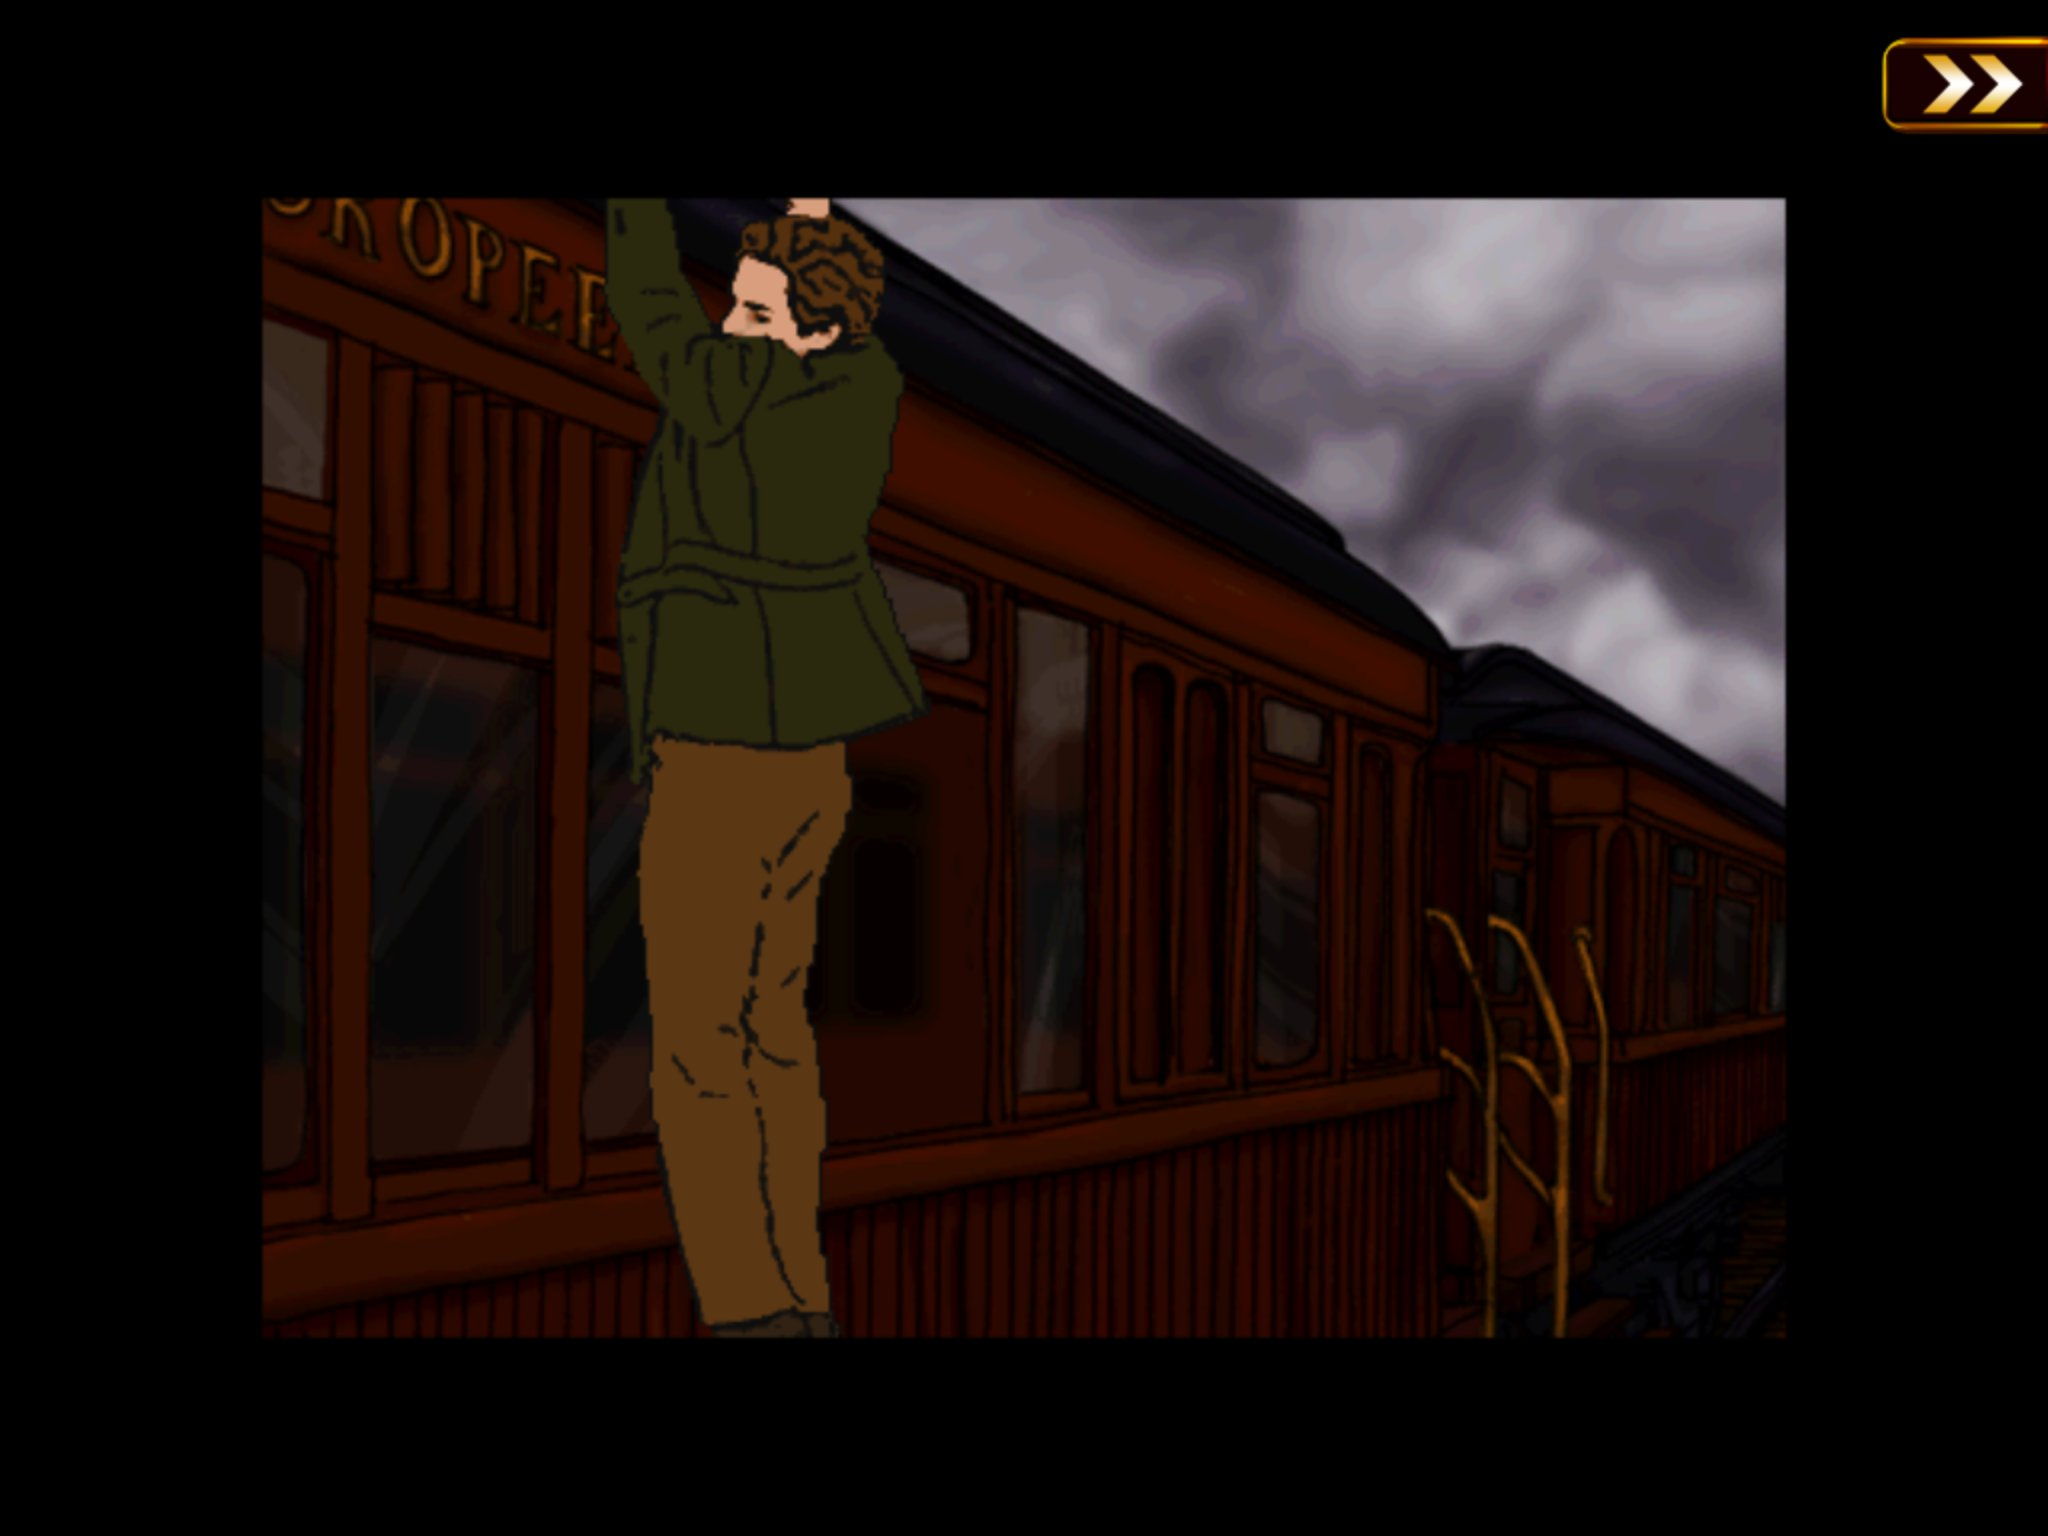 Silver Award-winning iOS and Android train adventure The Last Express is on sale right now